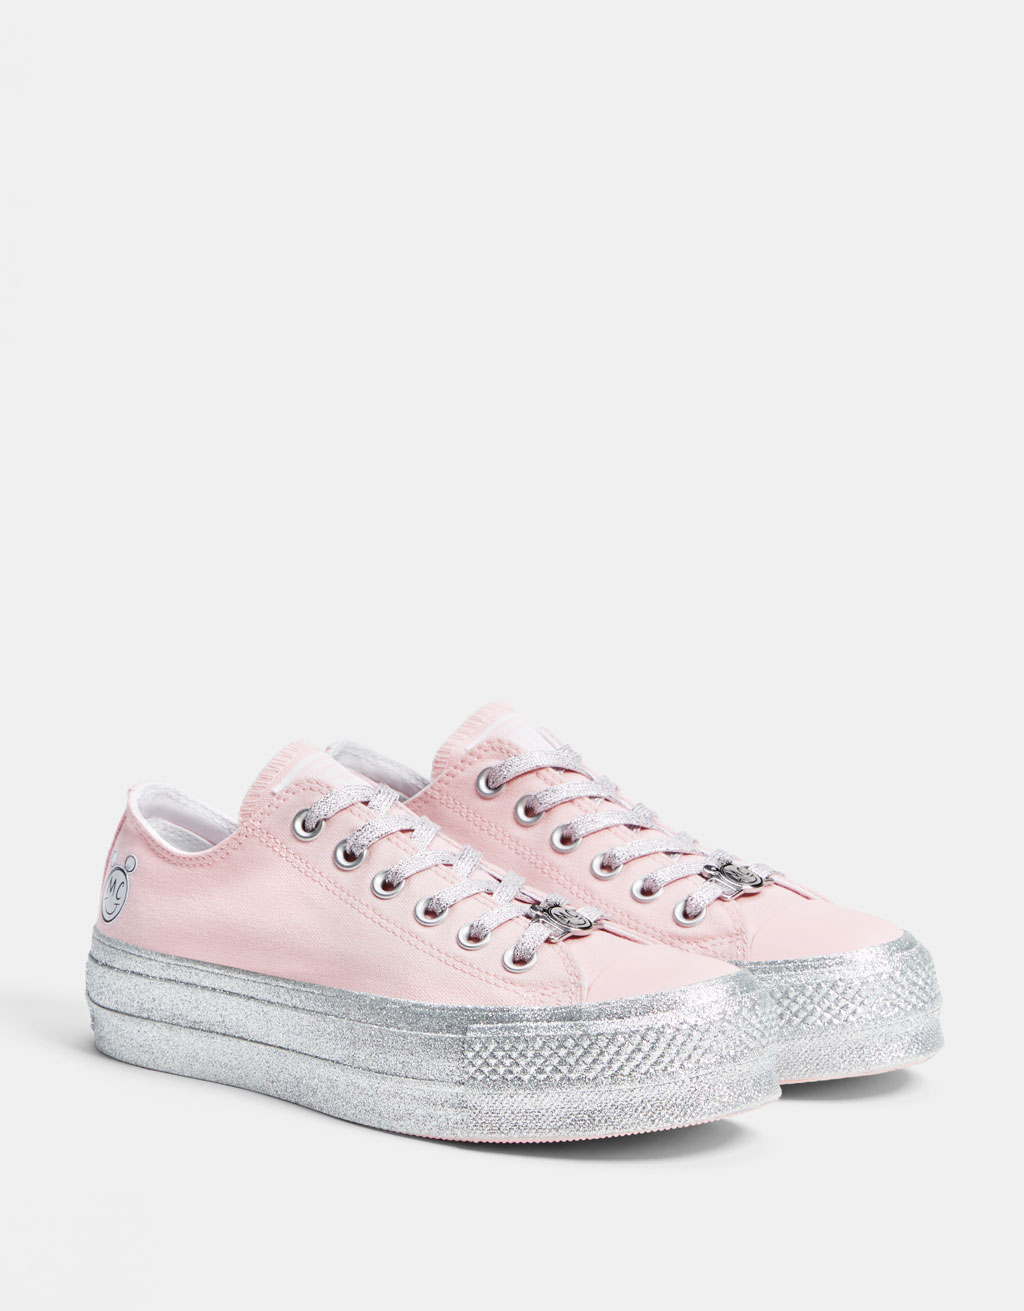 Converse X Miley Cyrus fabric platform sneakers